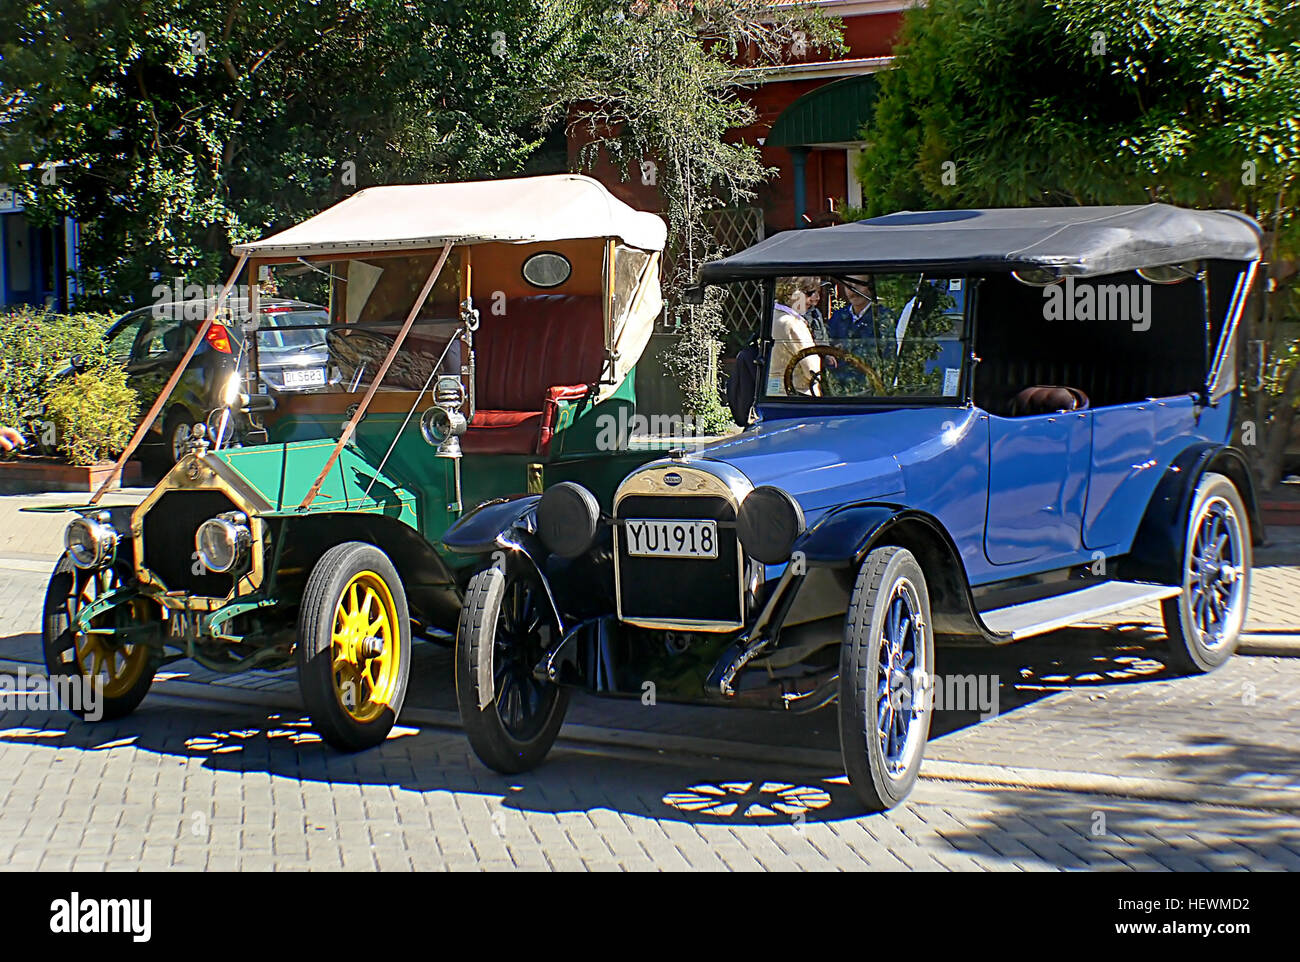 Vintage Ford Cars Stock Photos & Vintage Ford Cars Stock Images - Alamy